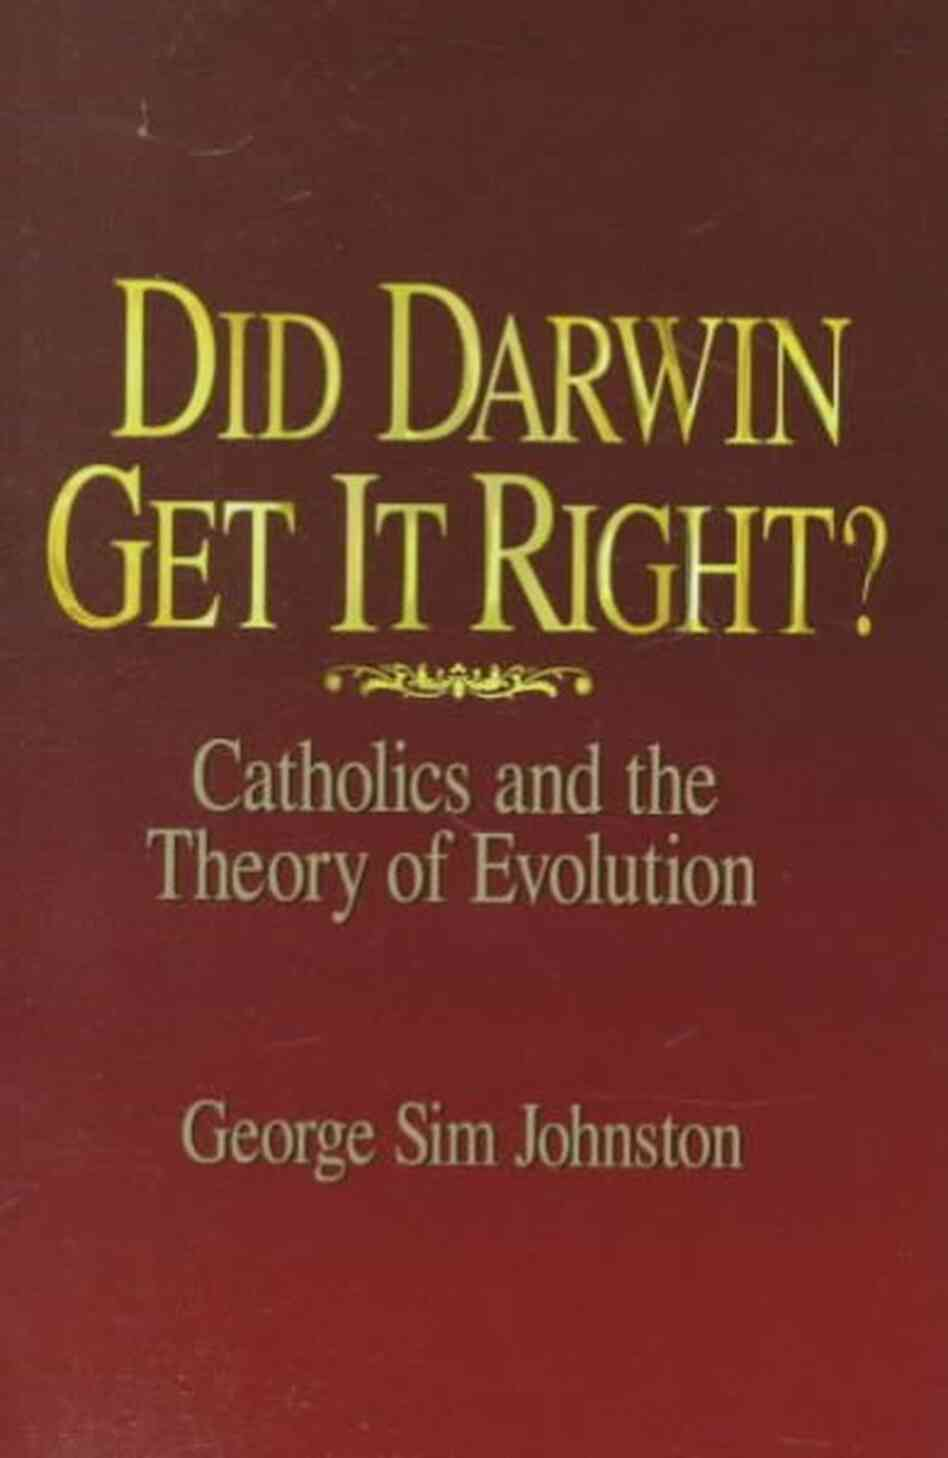 Did Darwin Get It Right?